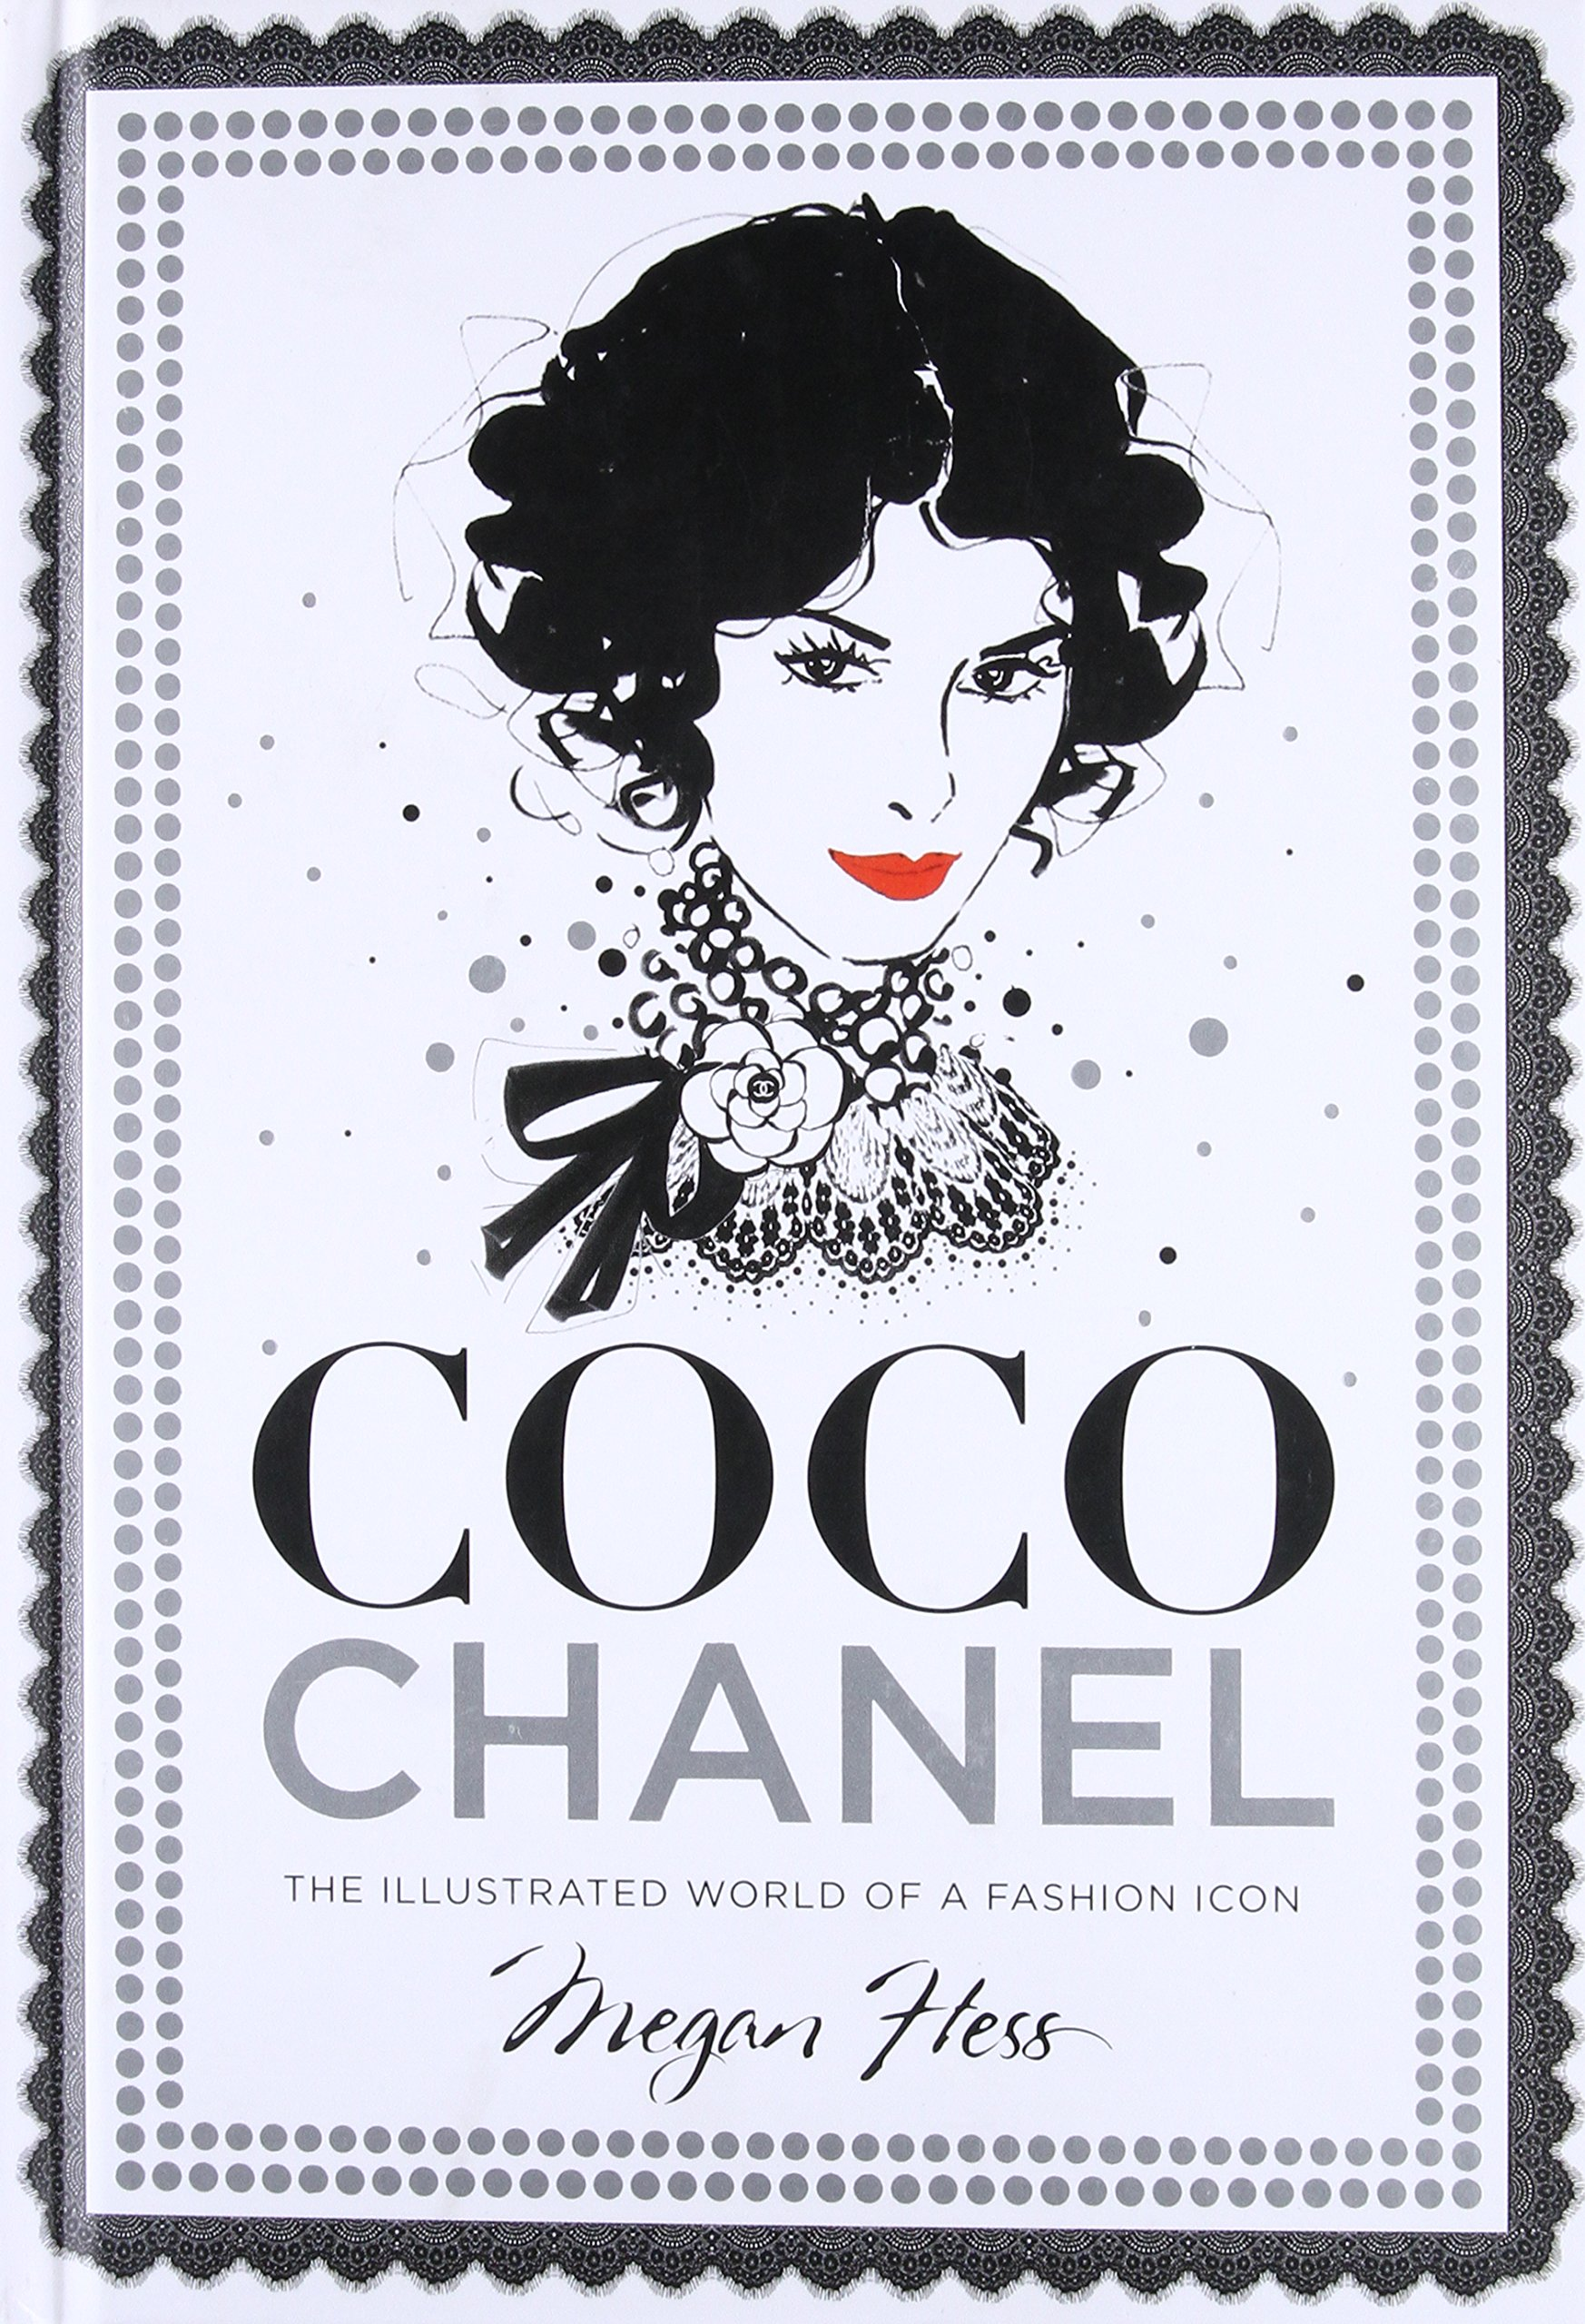 Coco chanel the illustrated world of a fashion icon megan hess coco chanel the illustrated world of a fashion icon megan hess 0884389663434 amazon books geotapseo Gallery